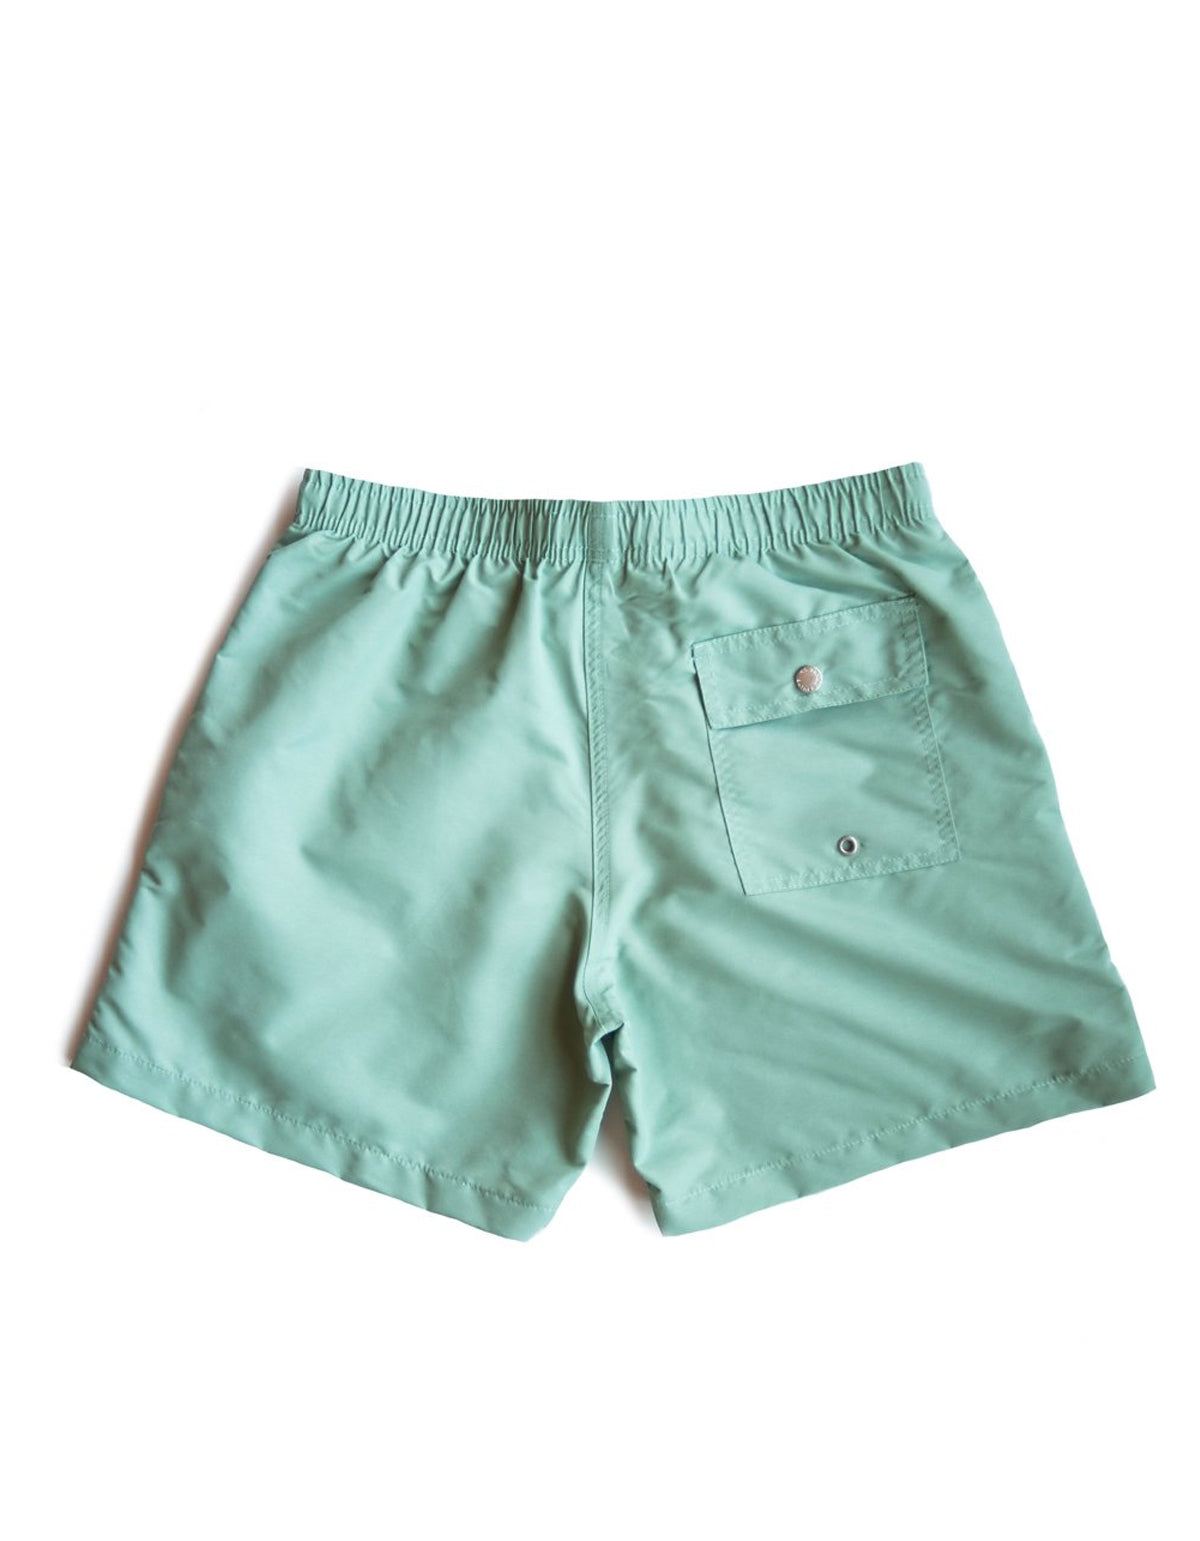 Bather Solid Trunk Seafoam